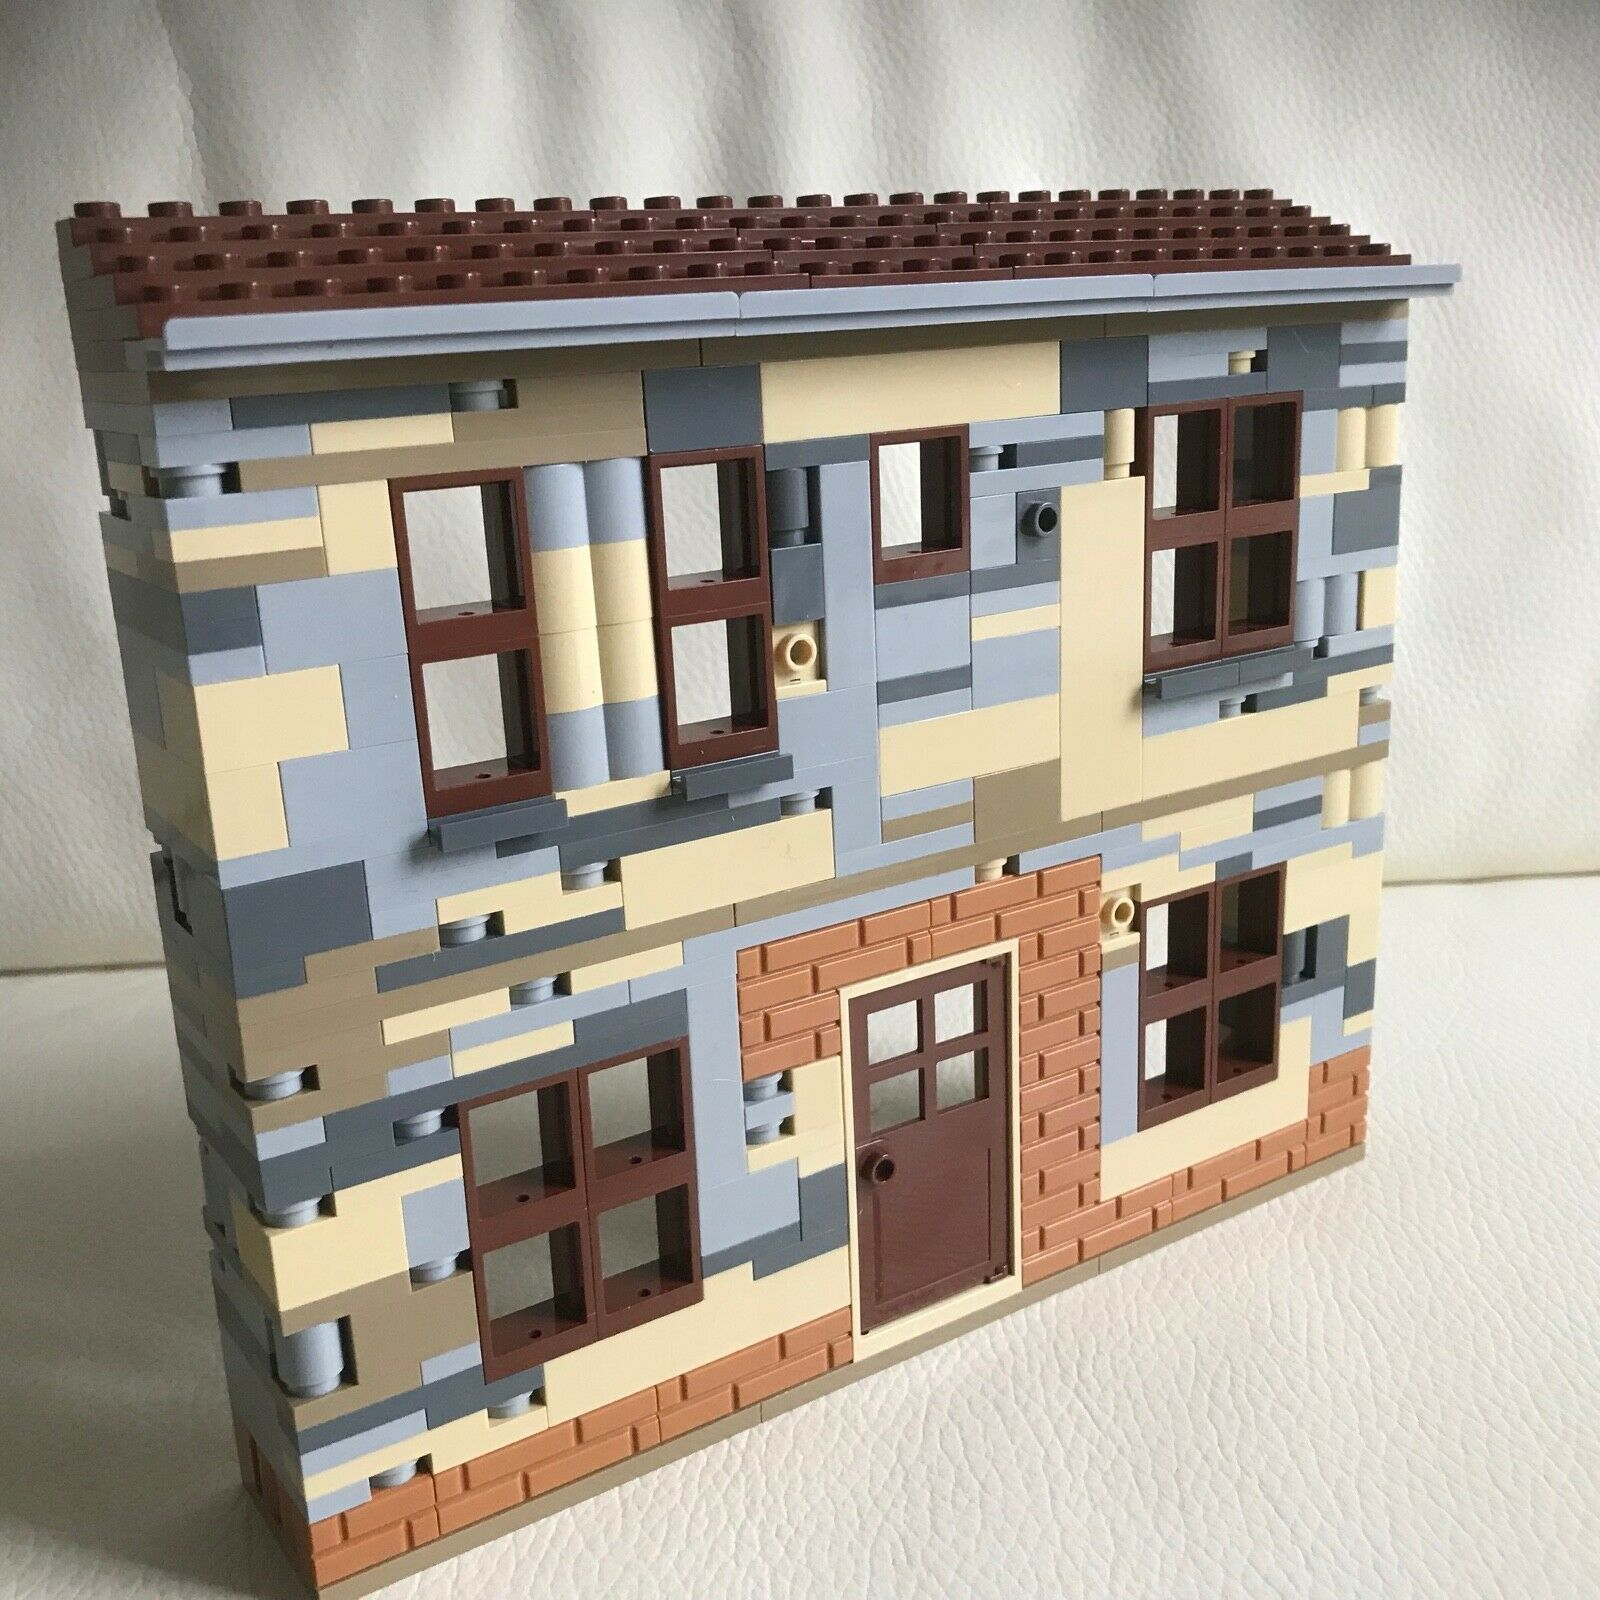 LEGO original parts FRENCH Village BUILDING playable solid DIORAMA my design 81